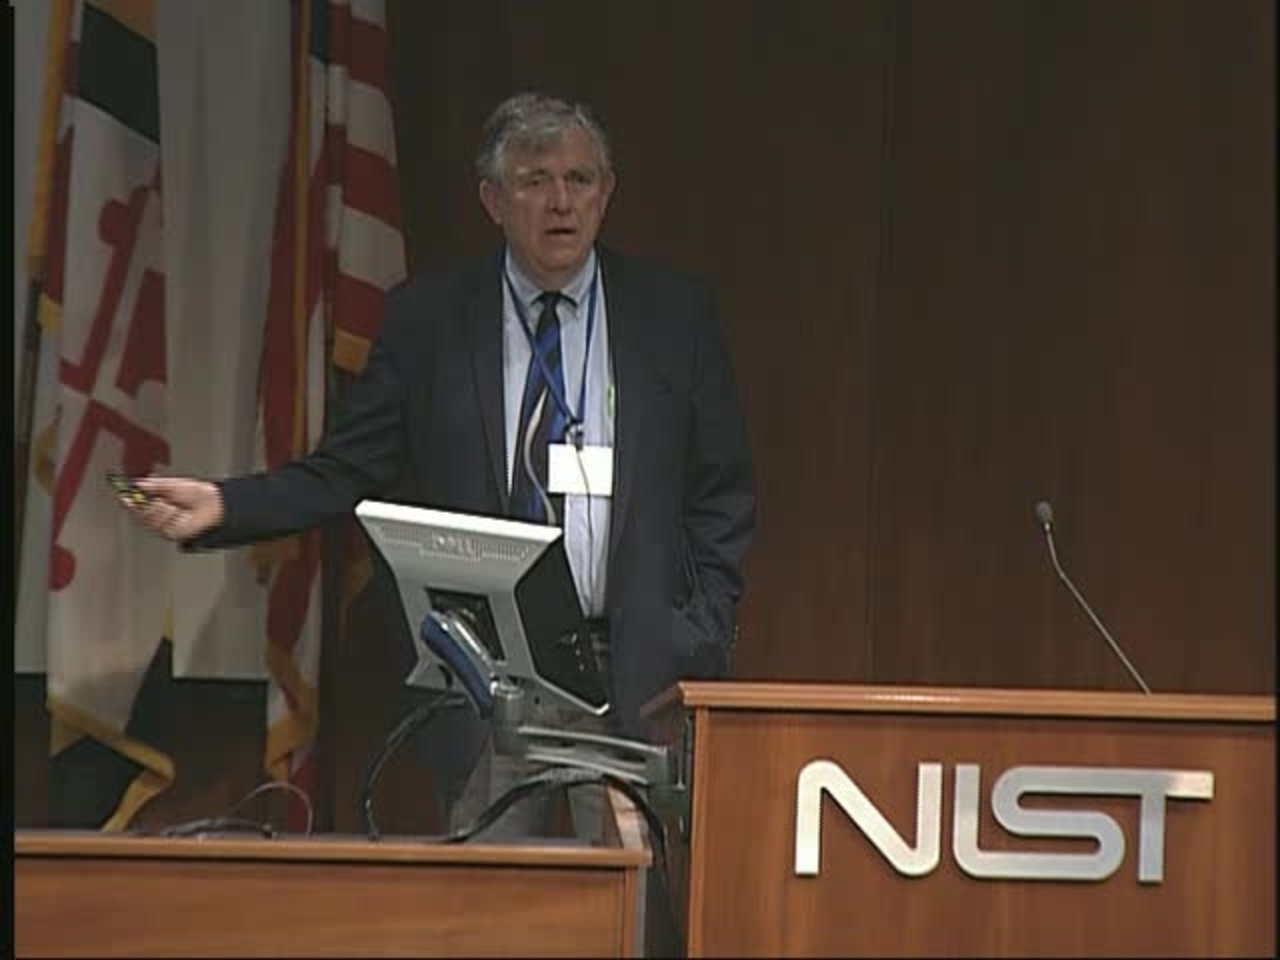 Keynote - The Evolution of Structural Engineering to Resist Earthquakes: 2019 Disaster Resilience Symposium